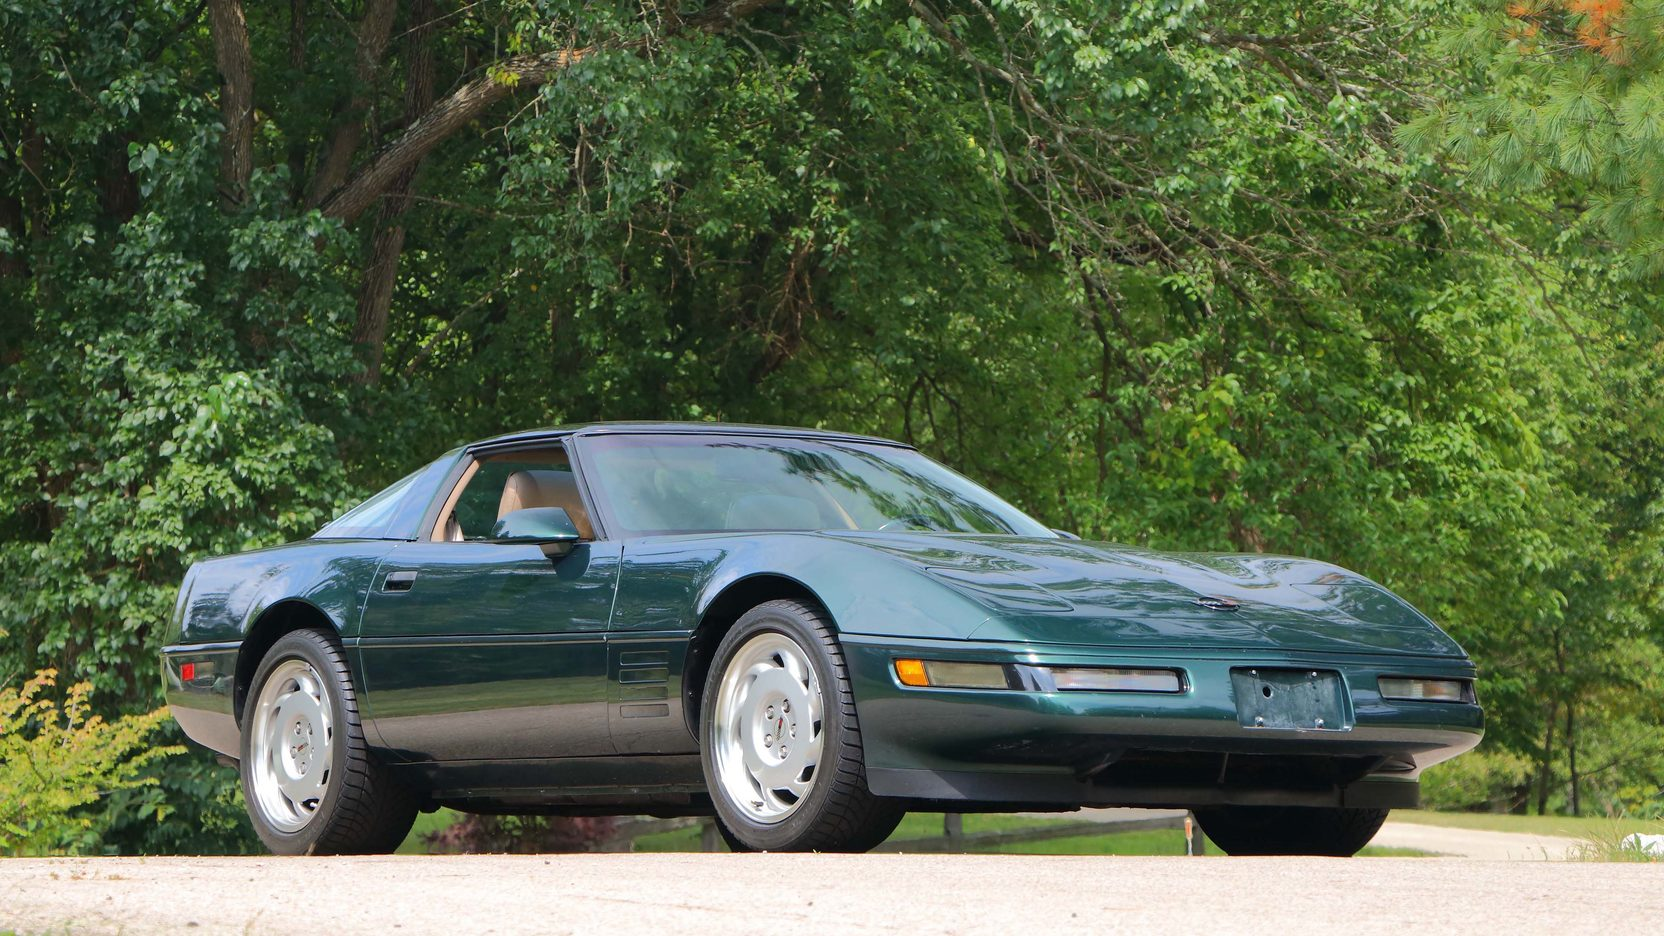 1992 Chevrolet Corvette green over tan 3/4 front